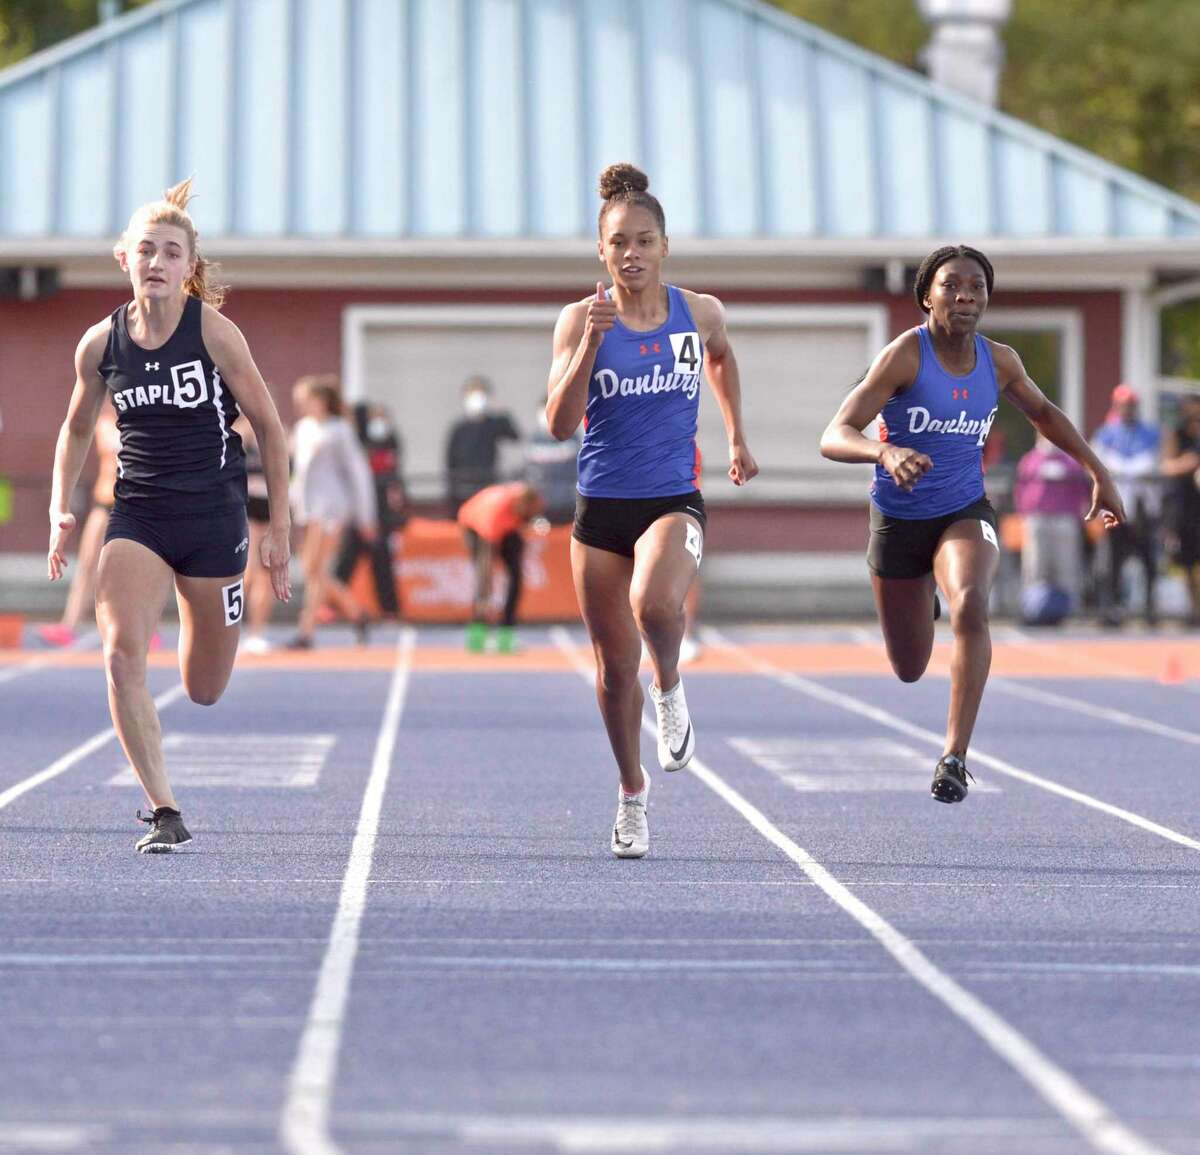 Danbury's Alanna Smith, center, finished first in the 100 meter dash at the FCIAC championships May 24.